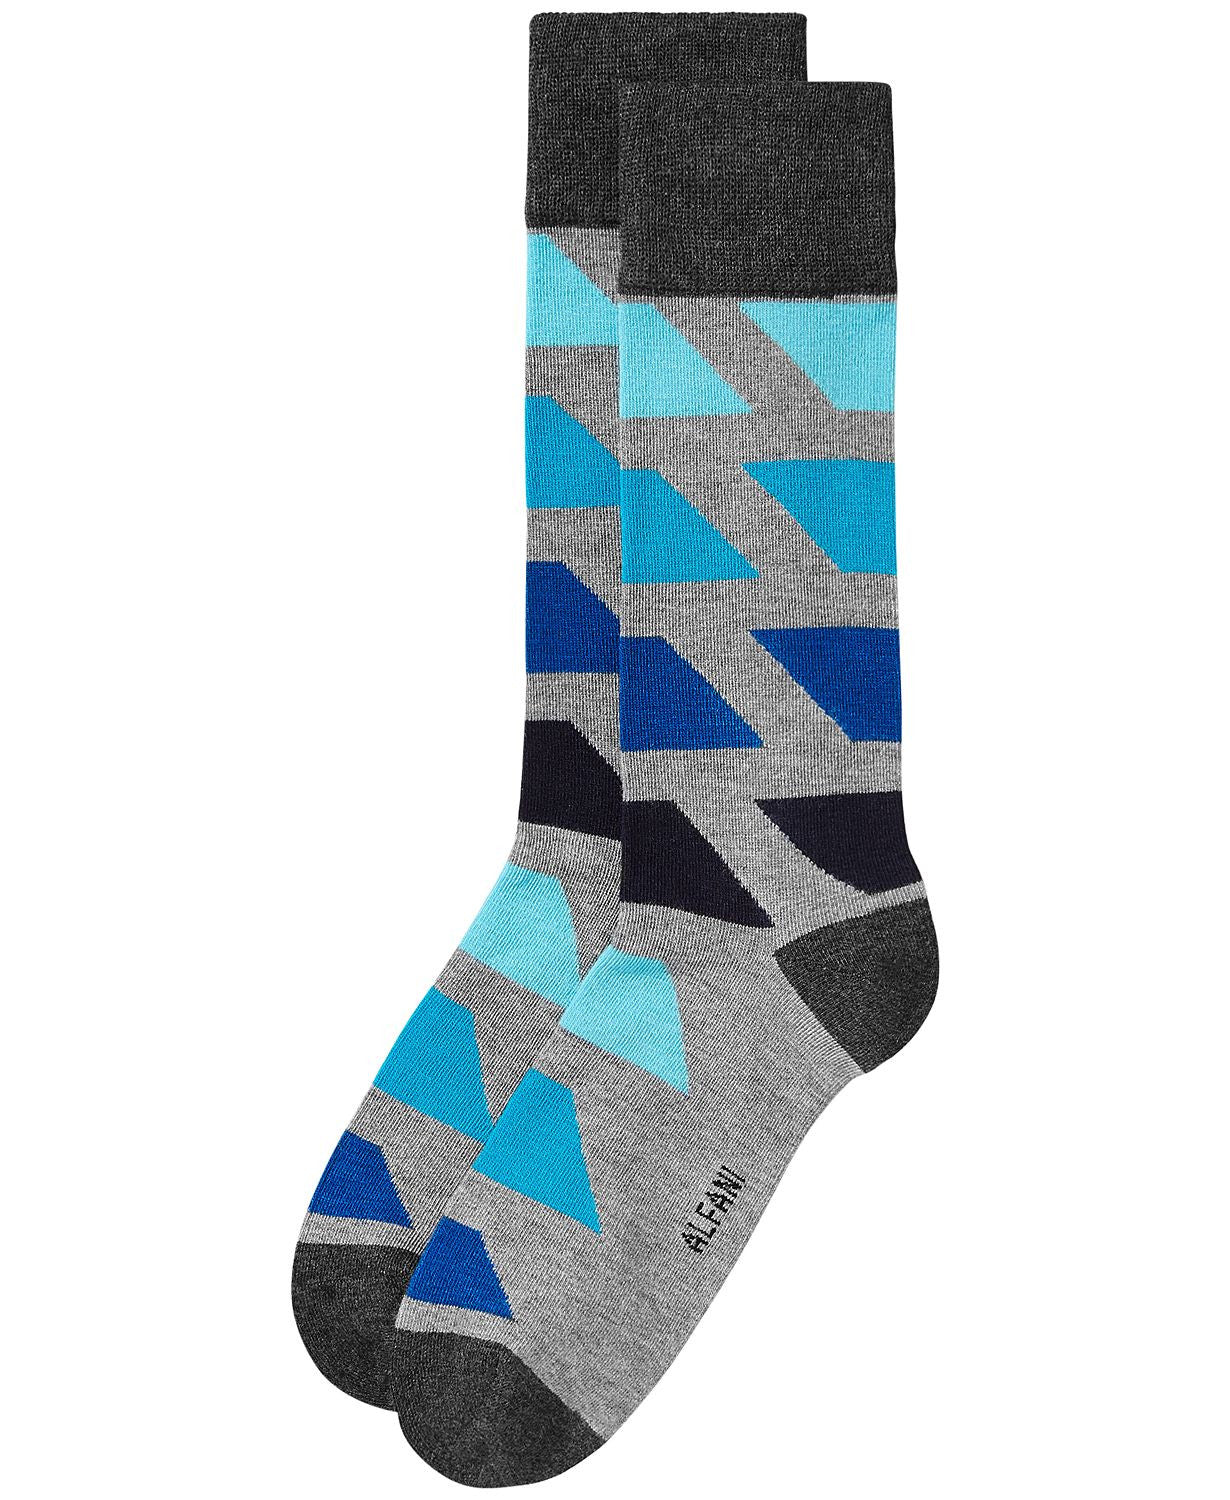 Alfani Colorblocked Socks Grey Aqua